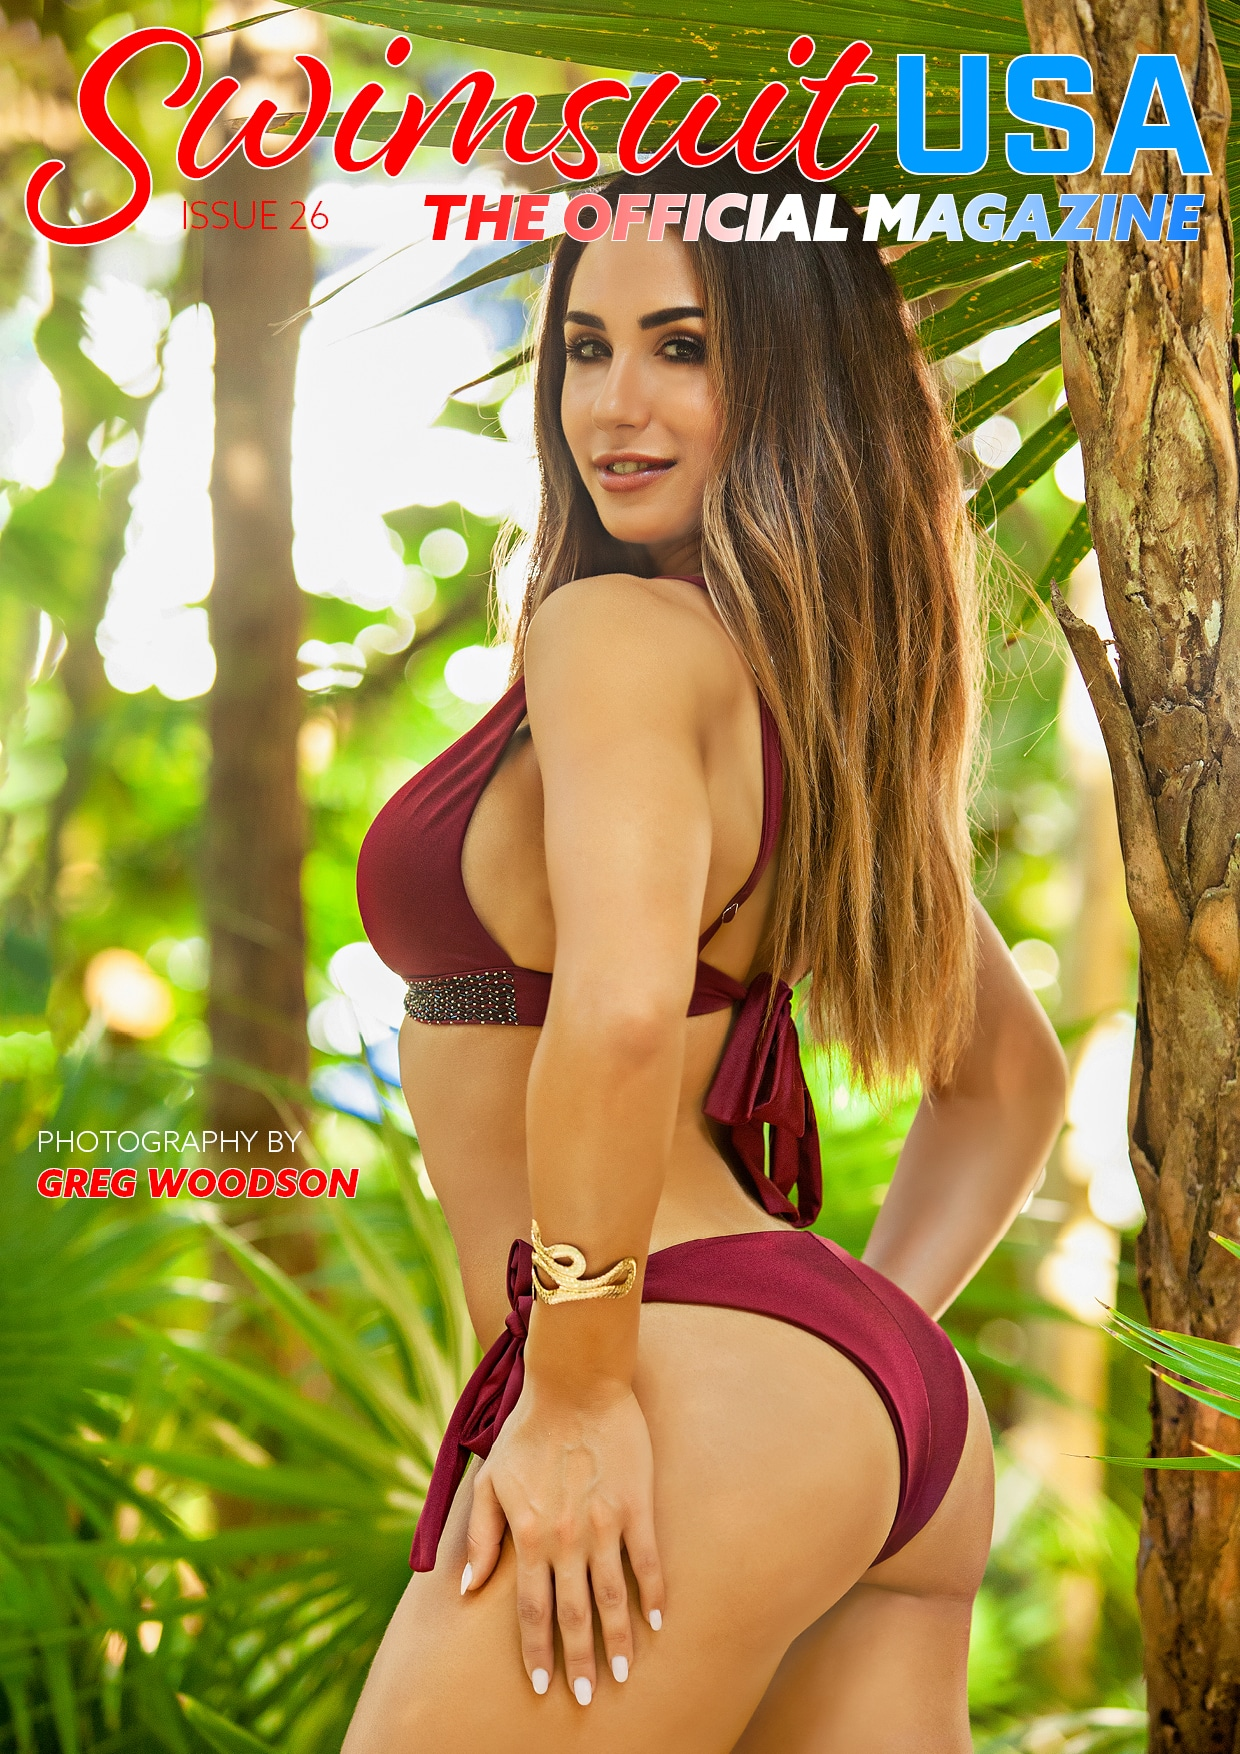 Swimsuit USA Magazine - Issue 24 - Emily Daffas 3